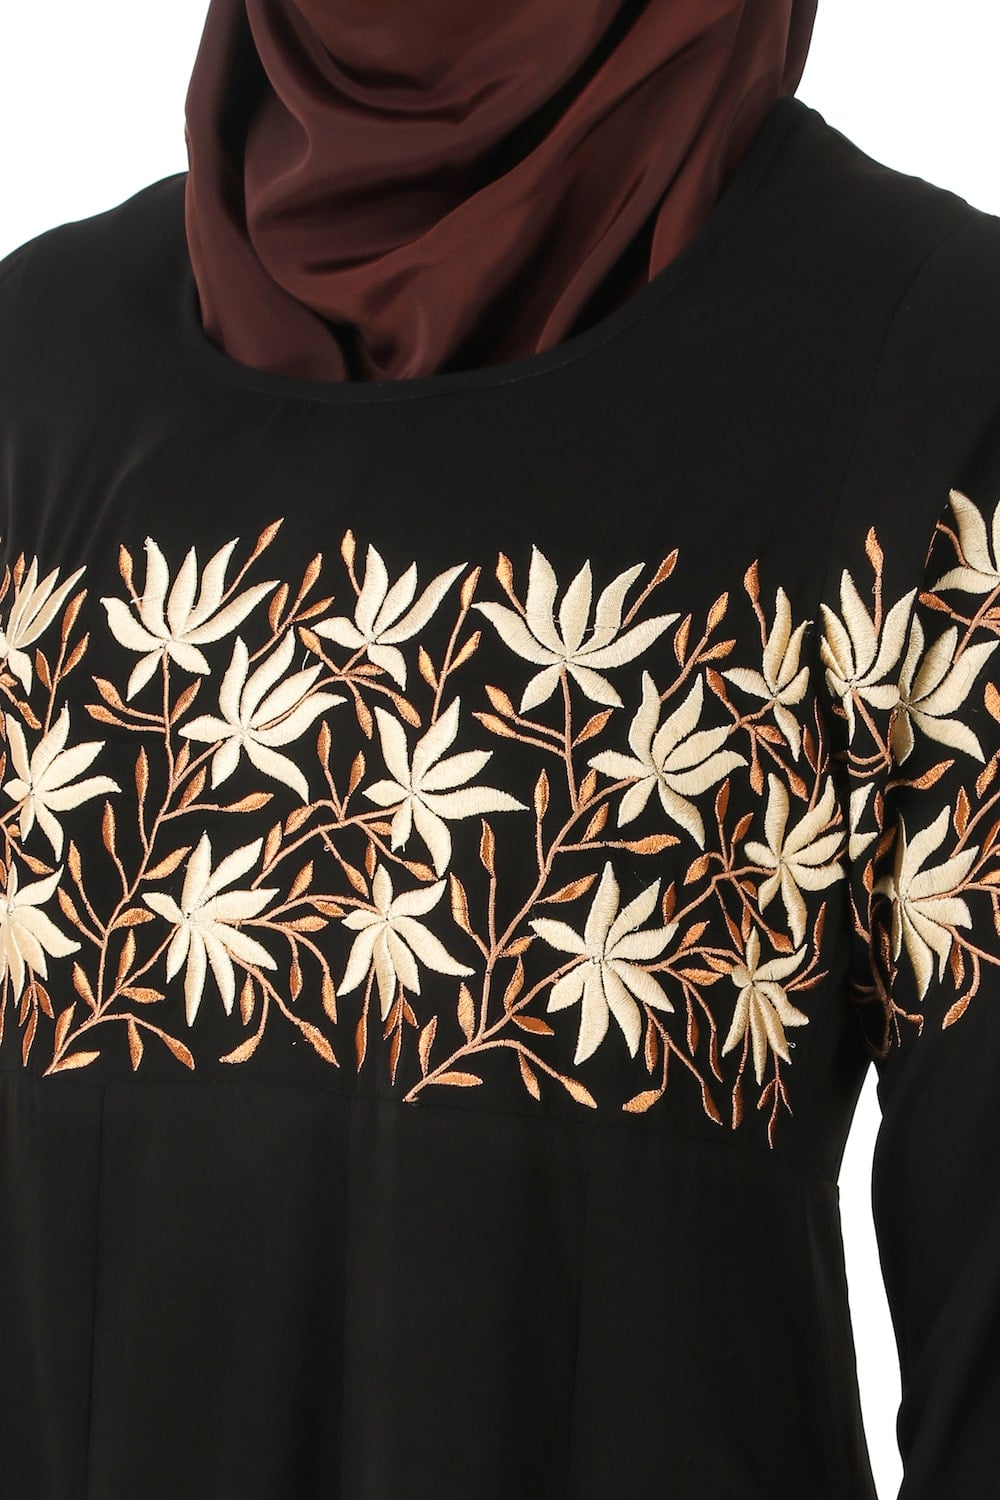 Horizontally Filled Floral Design Tunic